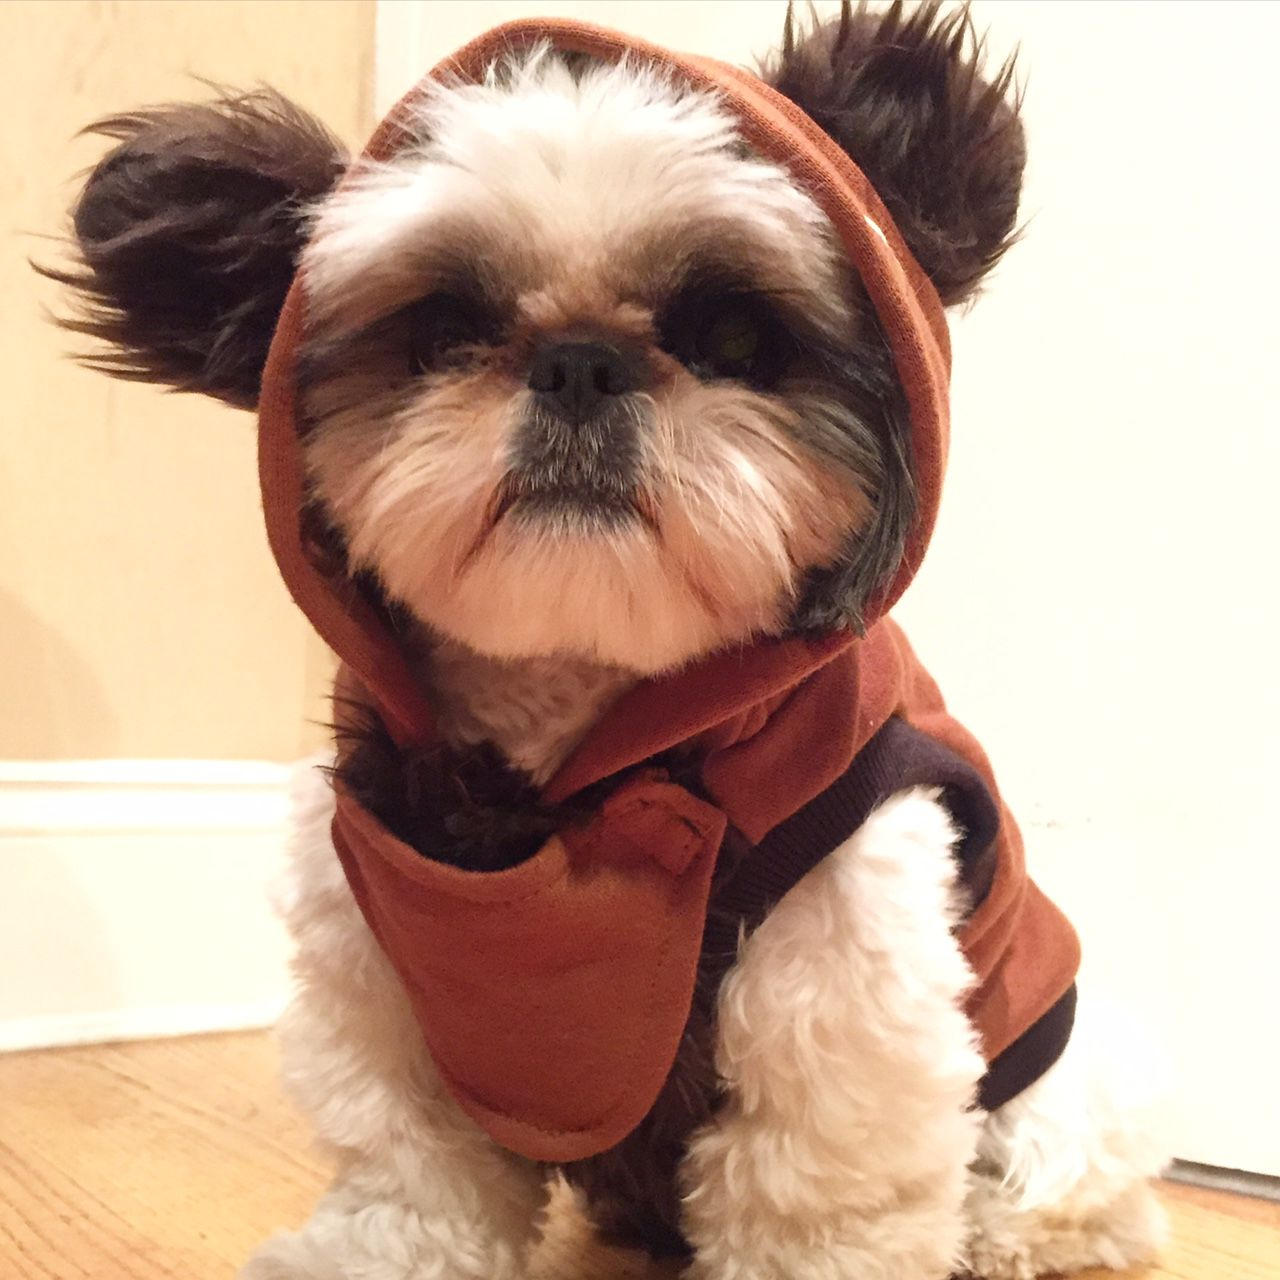 ewok dog costume shih tzu image result for dog ewok costume star wars pinterest 7489